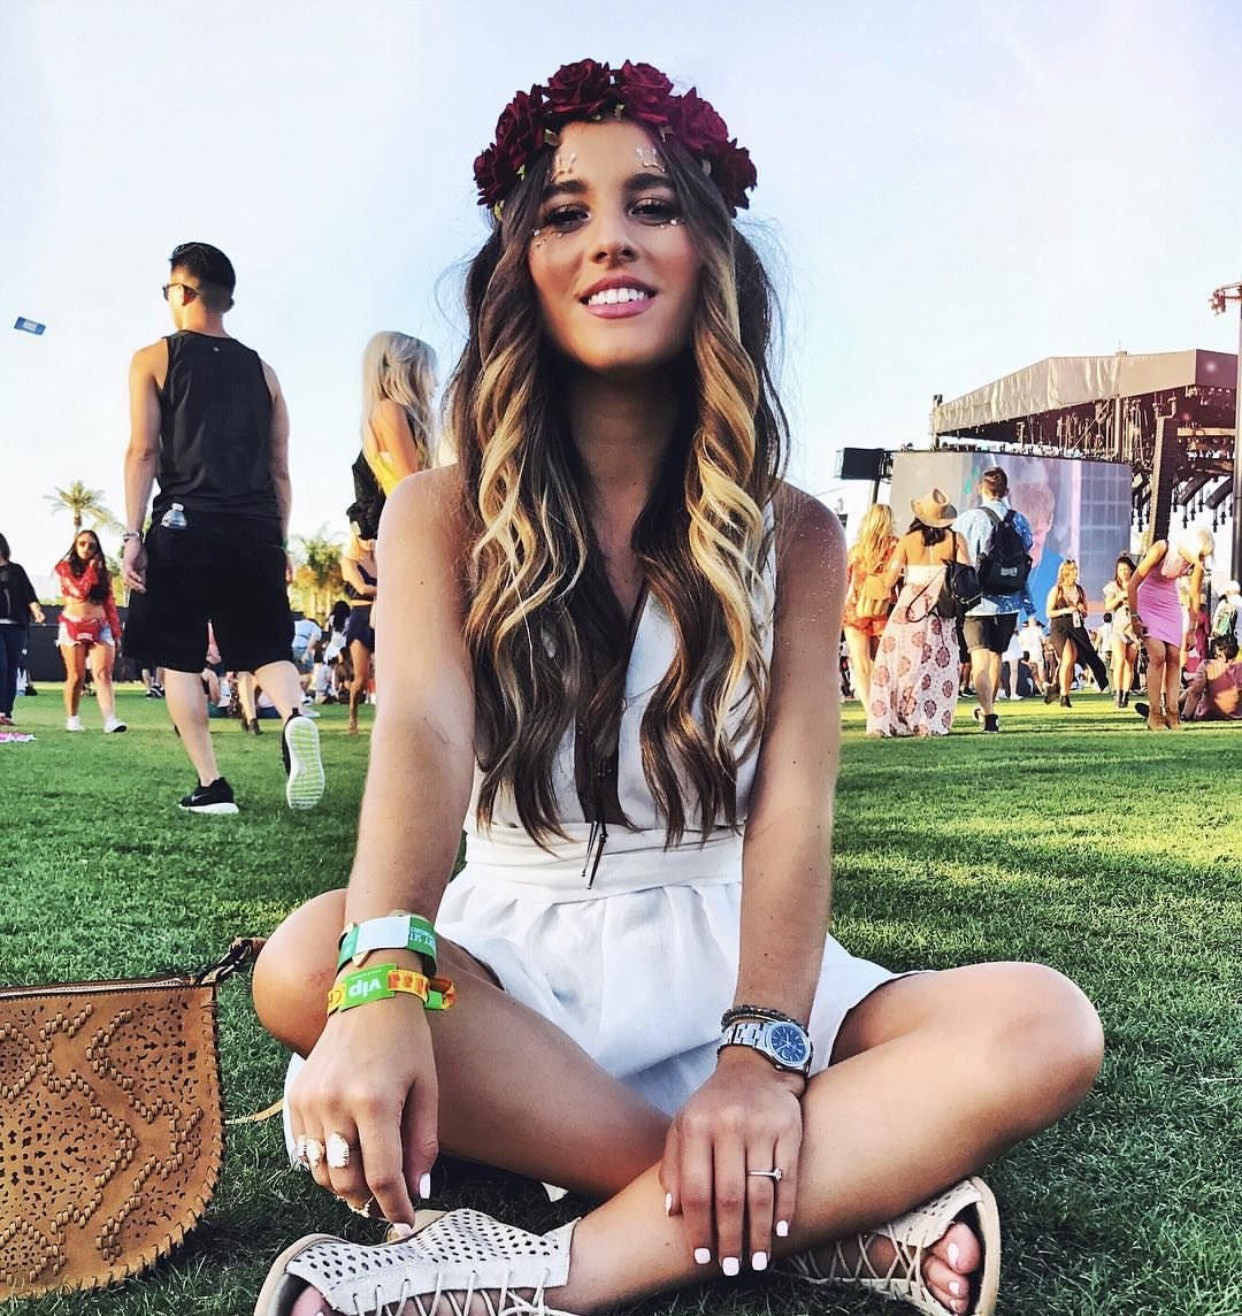 6 Must Have Accessories for Festival Season